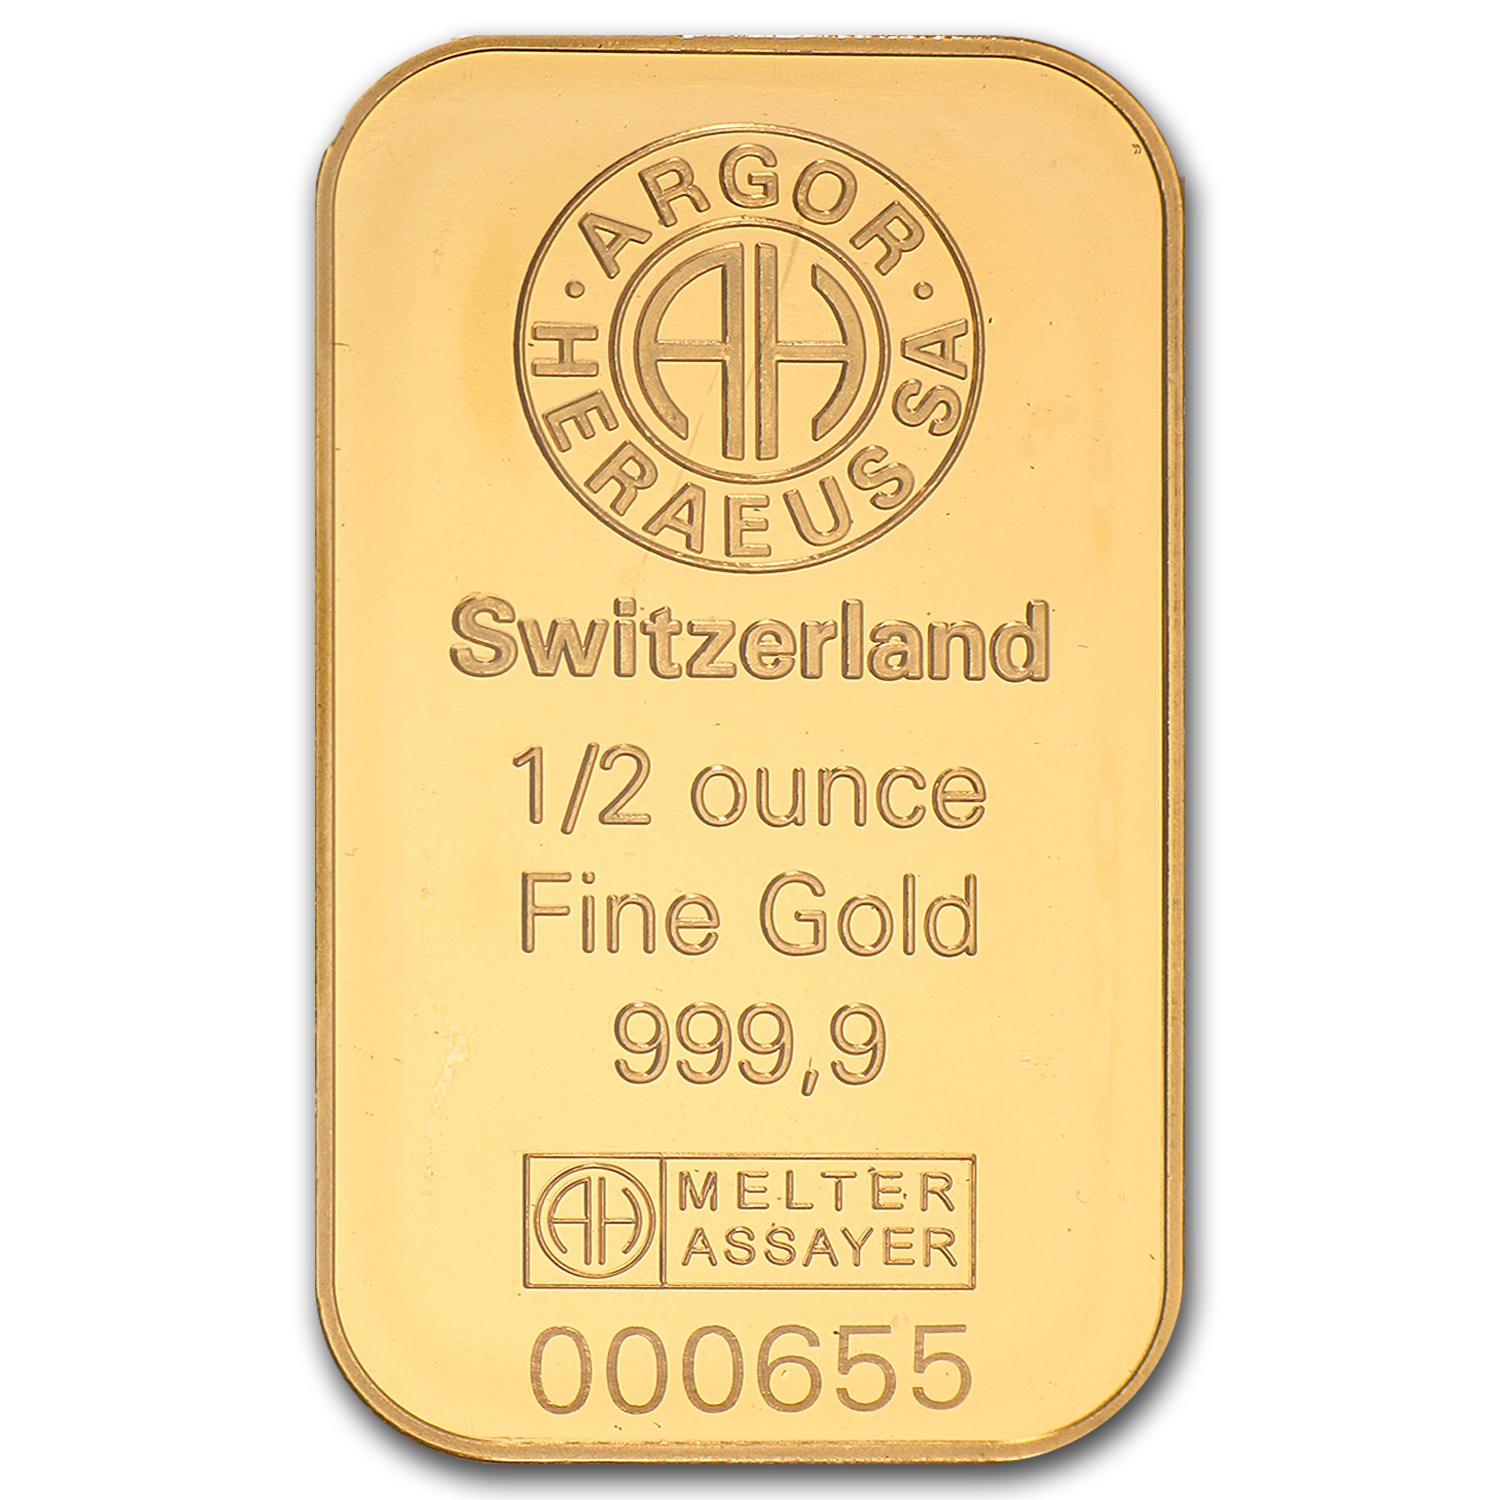 1/2 oz Gold Bar - Argor-Heraeus